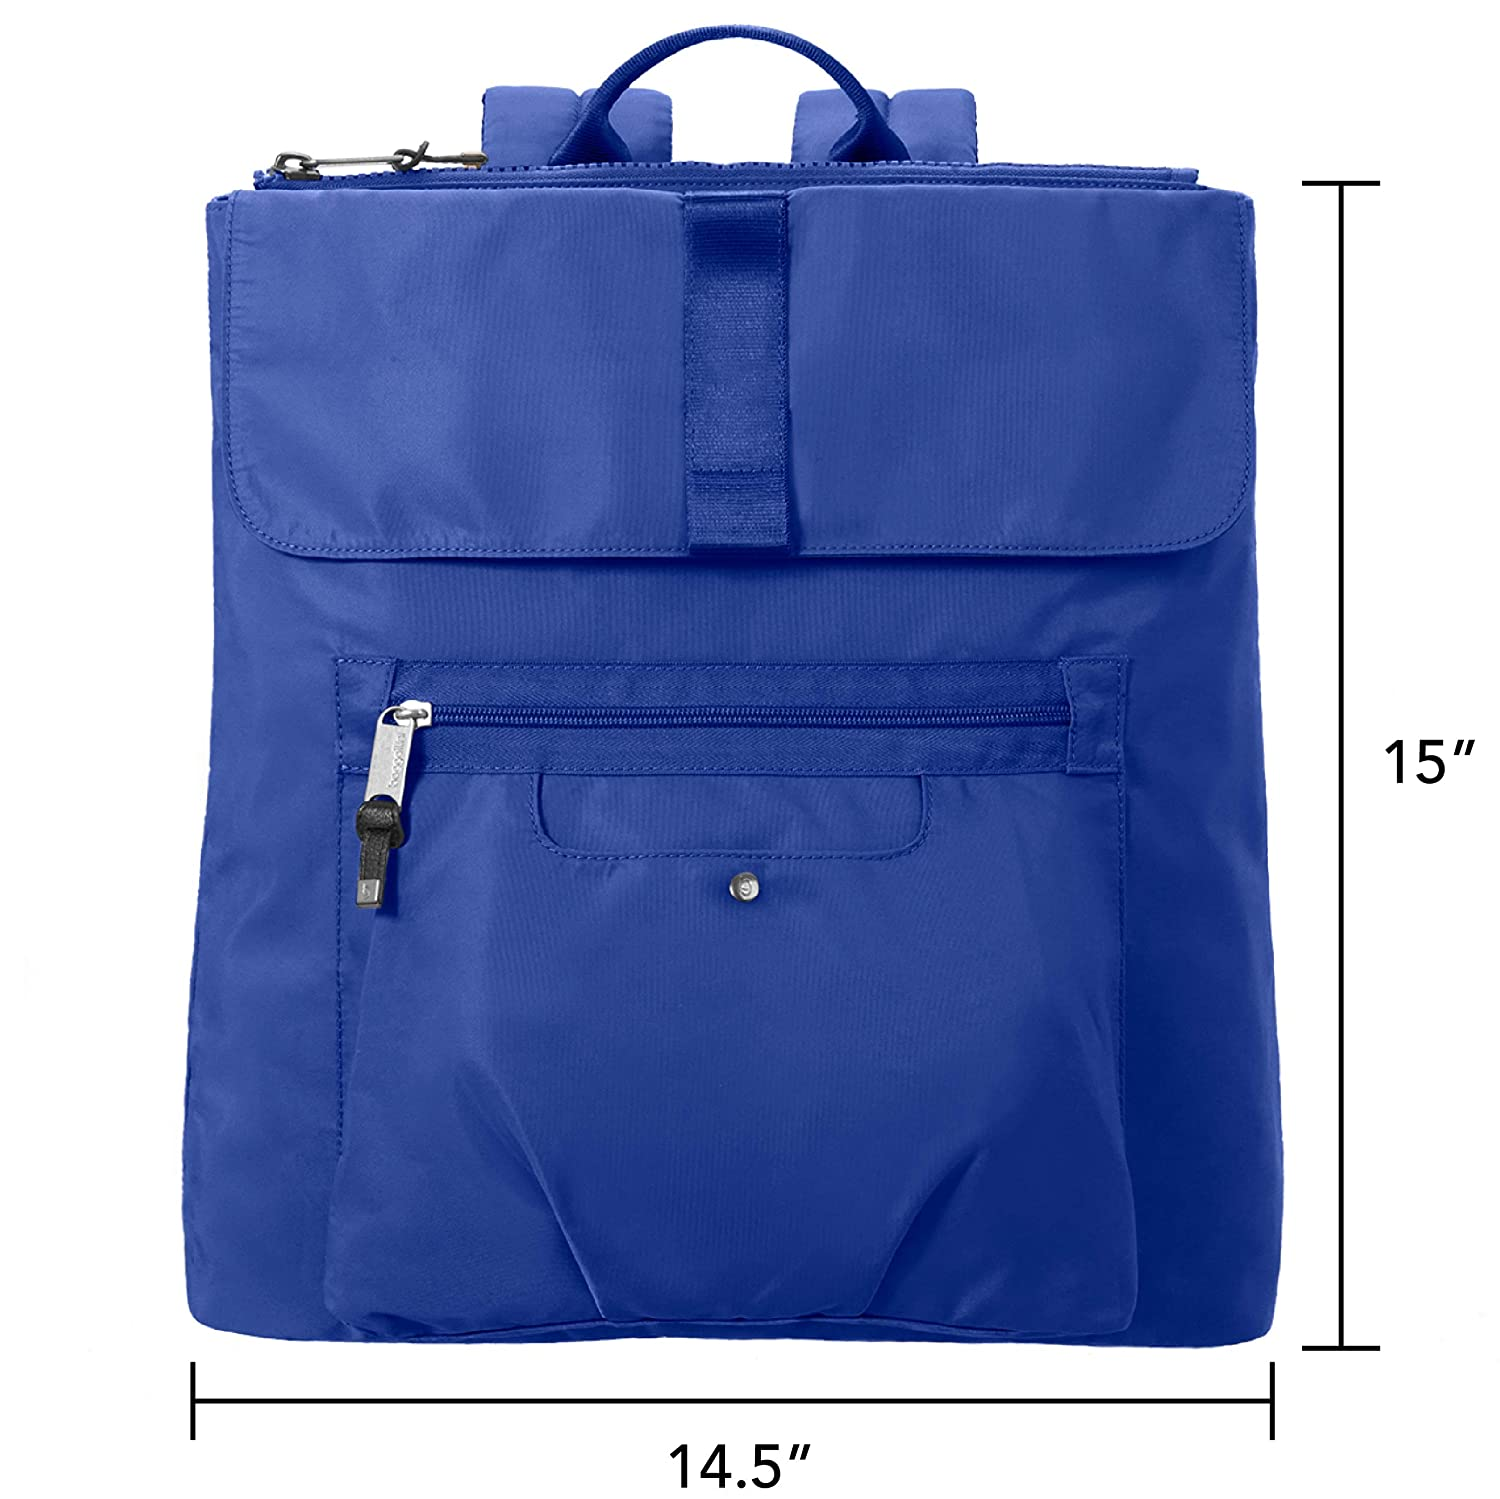 ac15274c4f74 Amazon.com  Baggallini Skedaddle Laptop Backpack